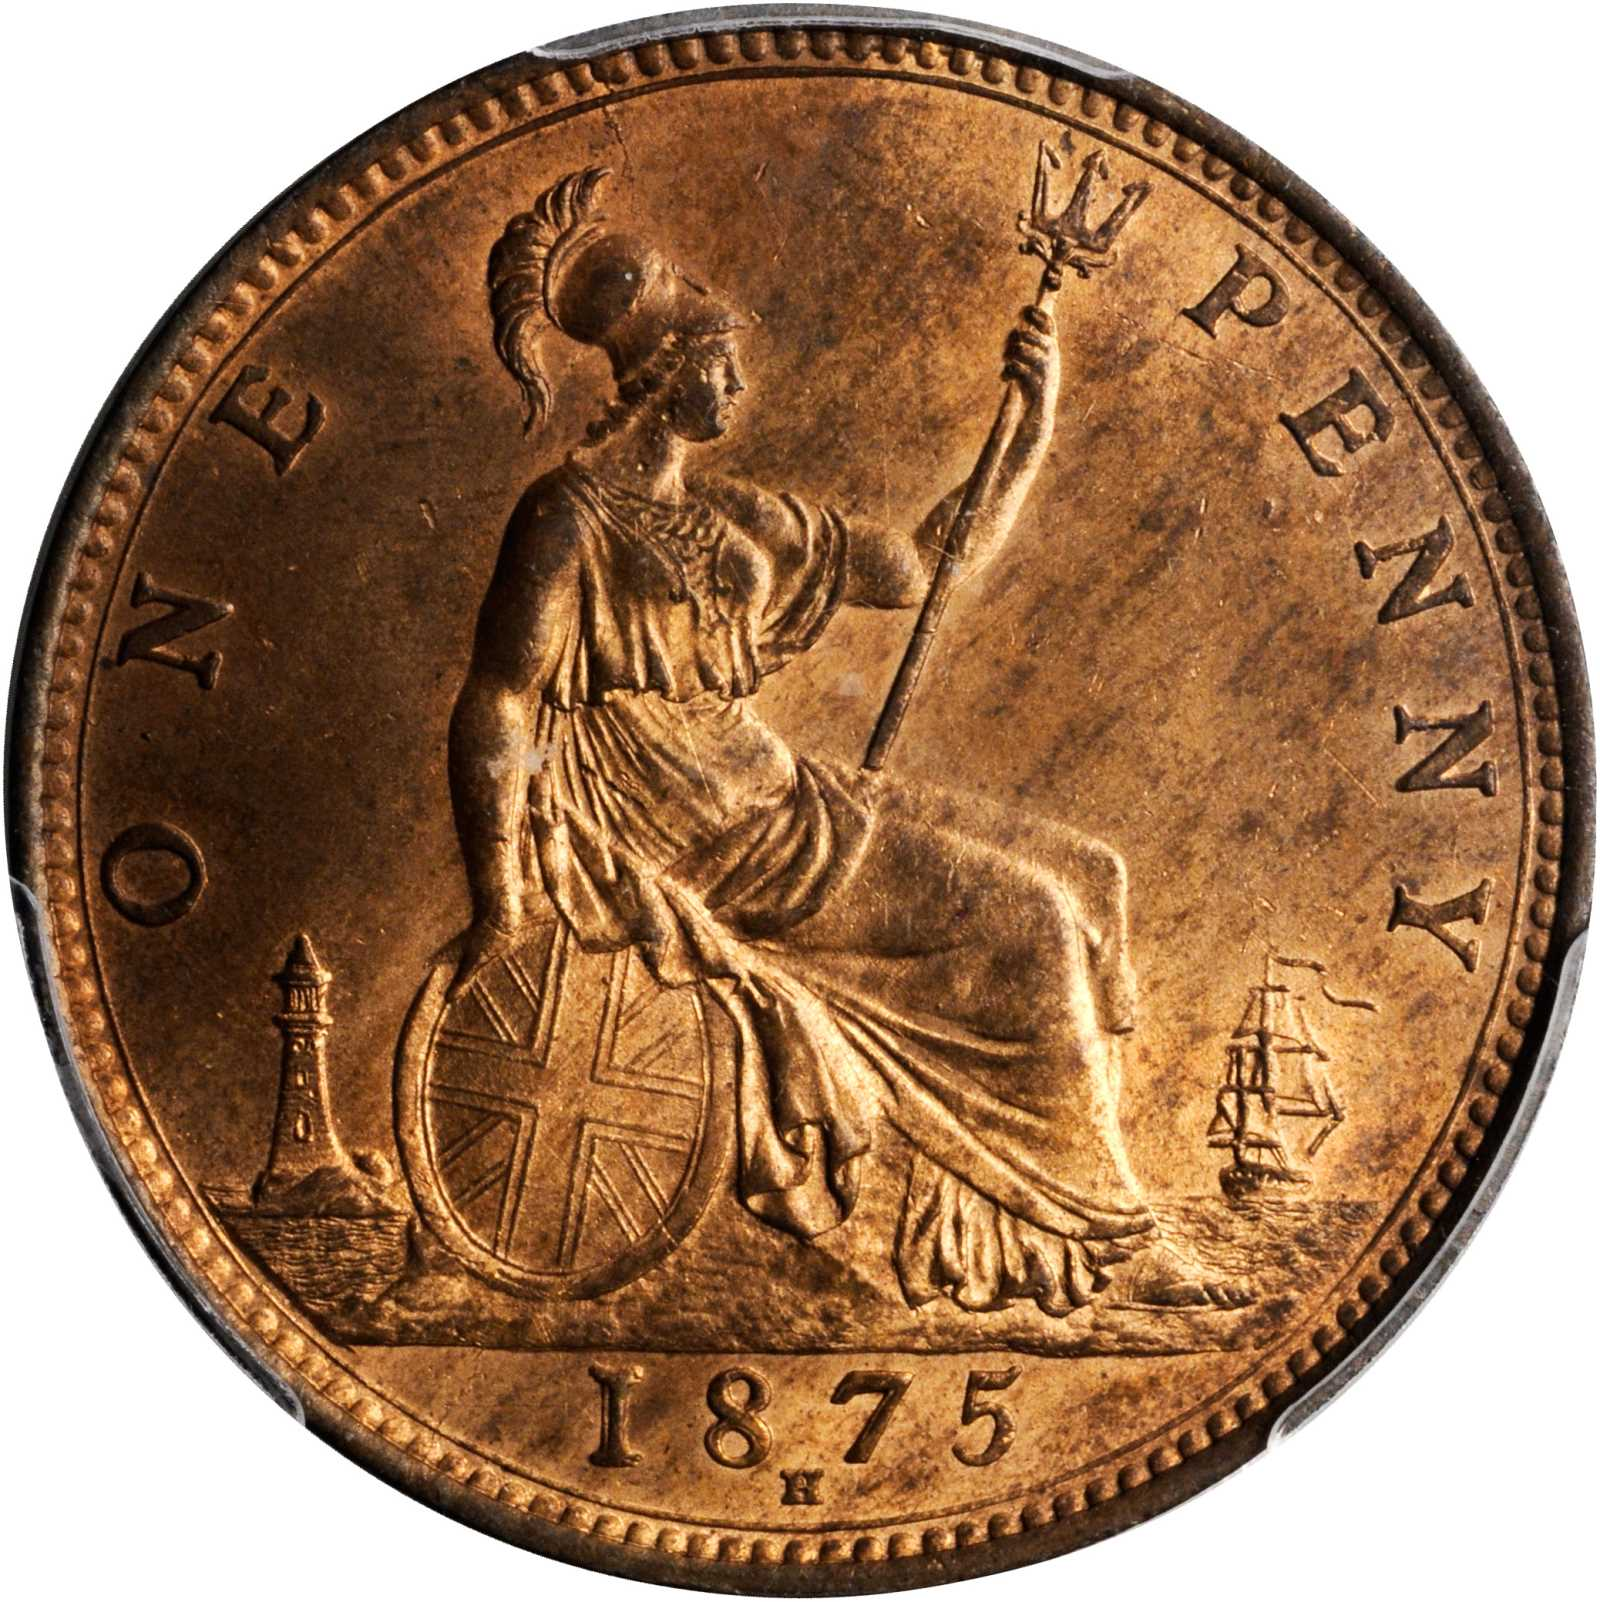 Penny 1875: Photo Great Britain 1875-H penny